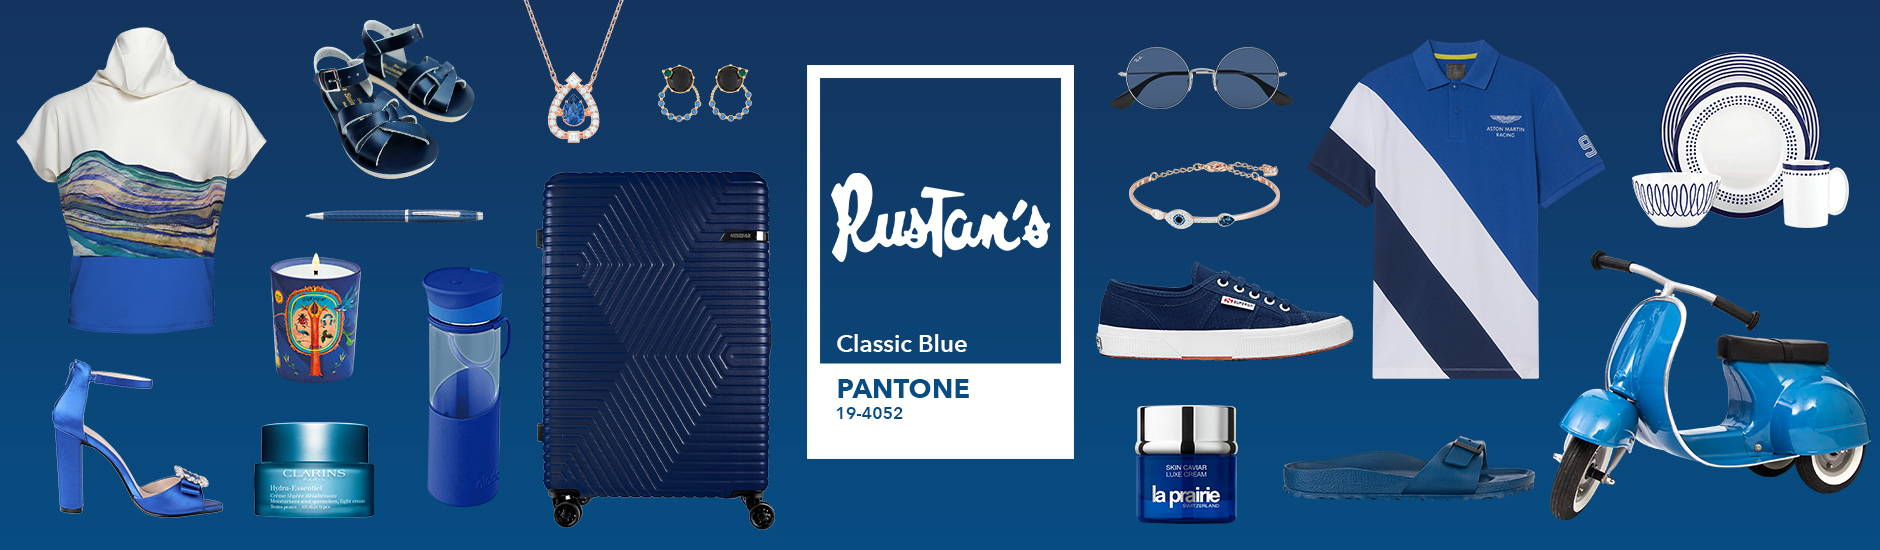 When in Doubt, Go Classic: Pantone's Color of the Year — Rustans.com